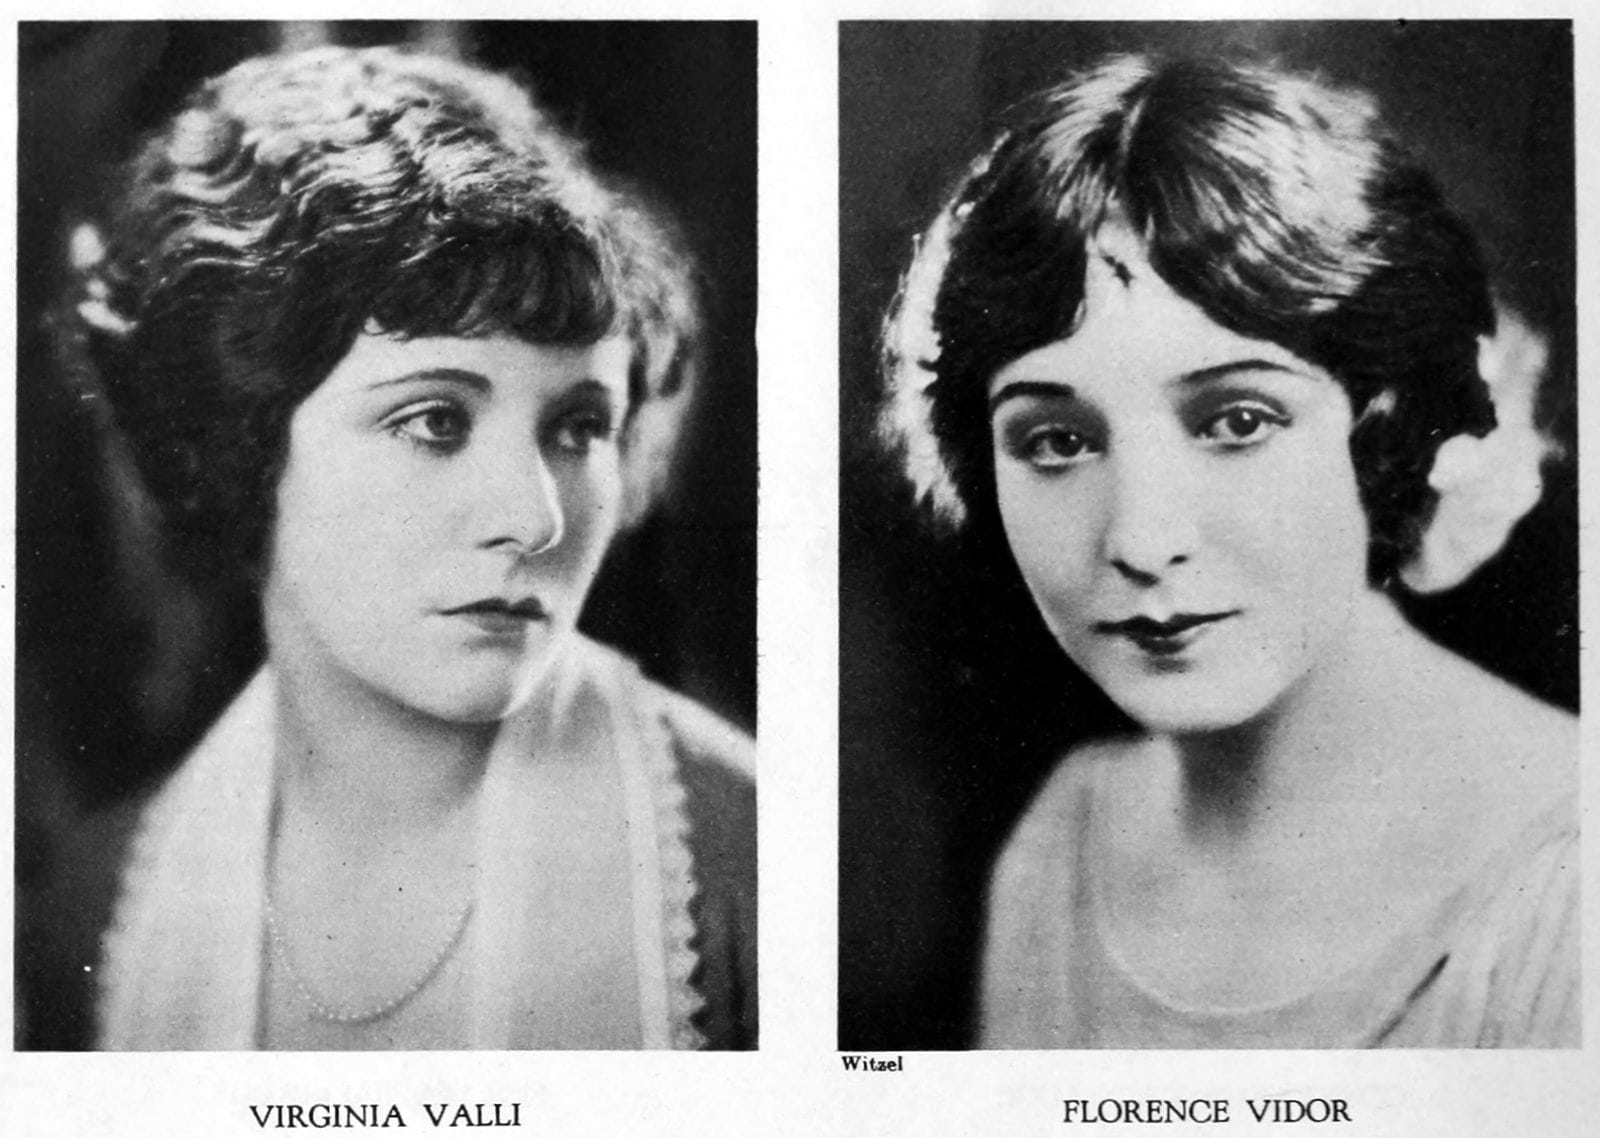 Vintage 1920s hairstyles for women - actresses Virginia Valli and Florence Vidor